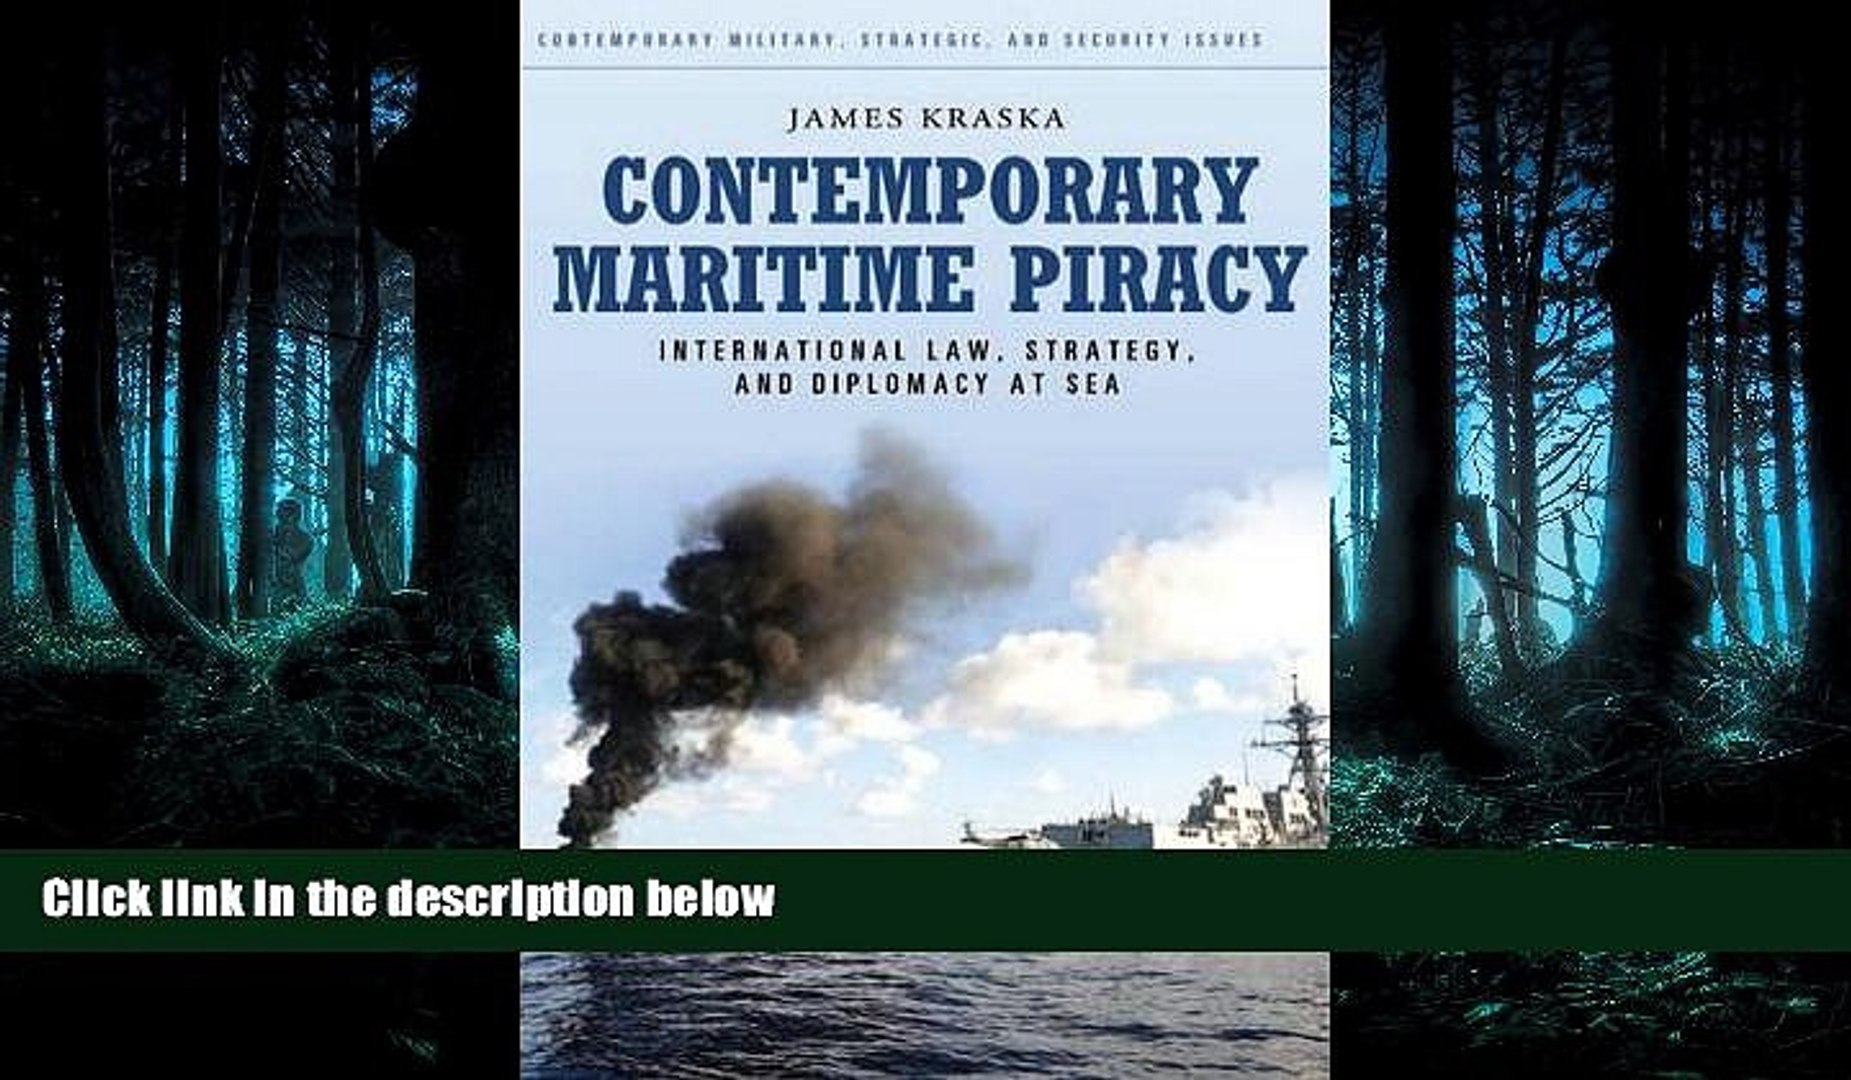 Contemporary Maritime Piracy: International Law, Strategy, and Diplomacy at Sea